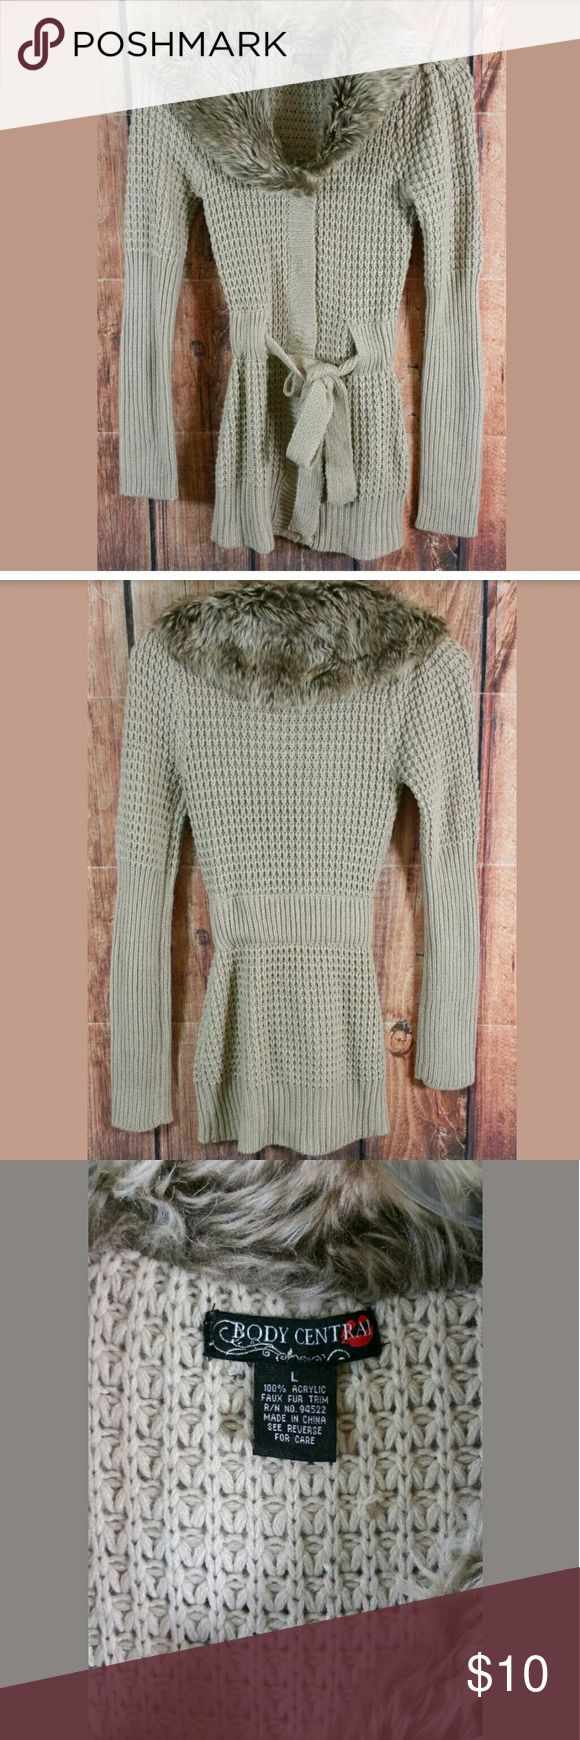 """Body Central Sweater Size Large Faux Fur Collar Body Central Sweater Size Large Beige Faux Fur Collar and Tie Belt Condition:  Great Used Condition from Clean Pet/Smoke Free Home  Measurements:  Bust (Pit to Pit): 15"""" Length: 29.5"""" Body Central Sweaters Cardigans"""